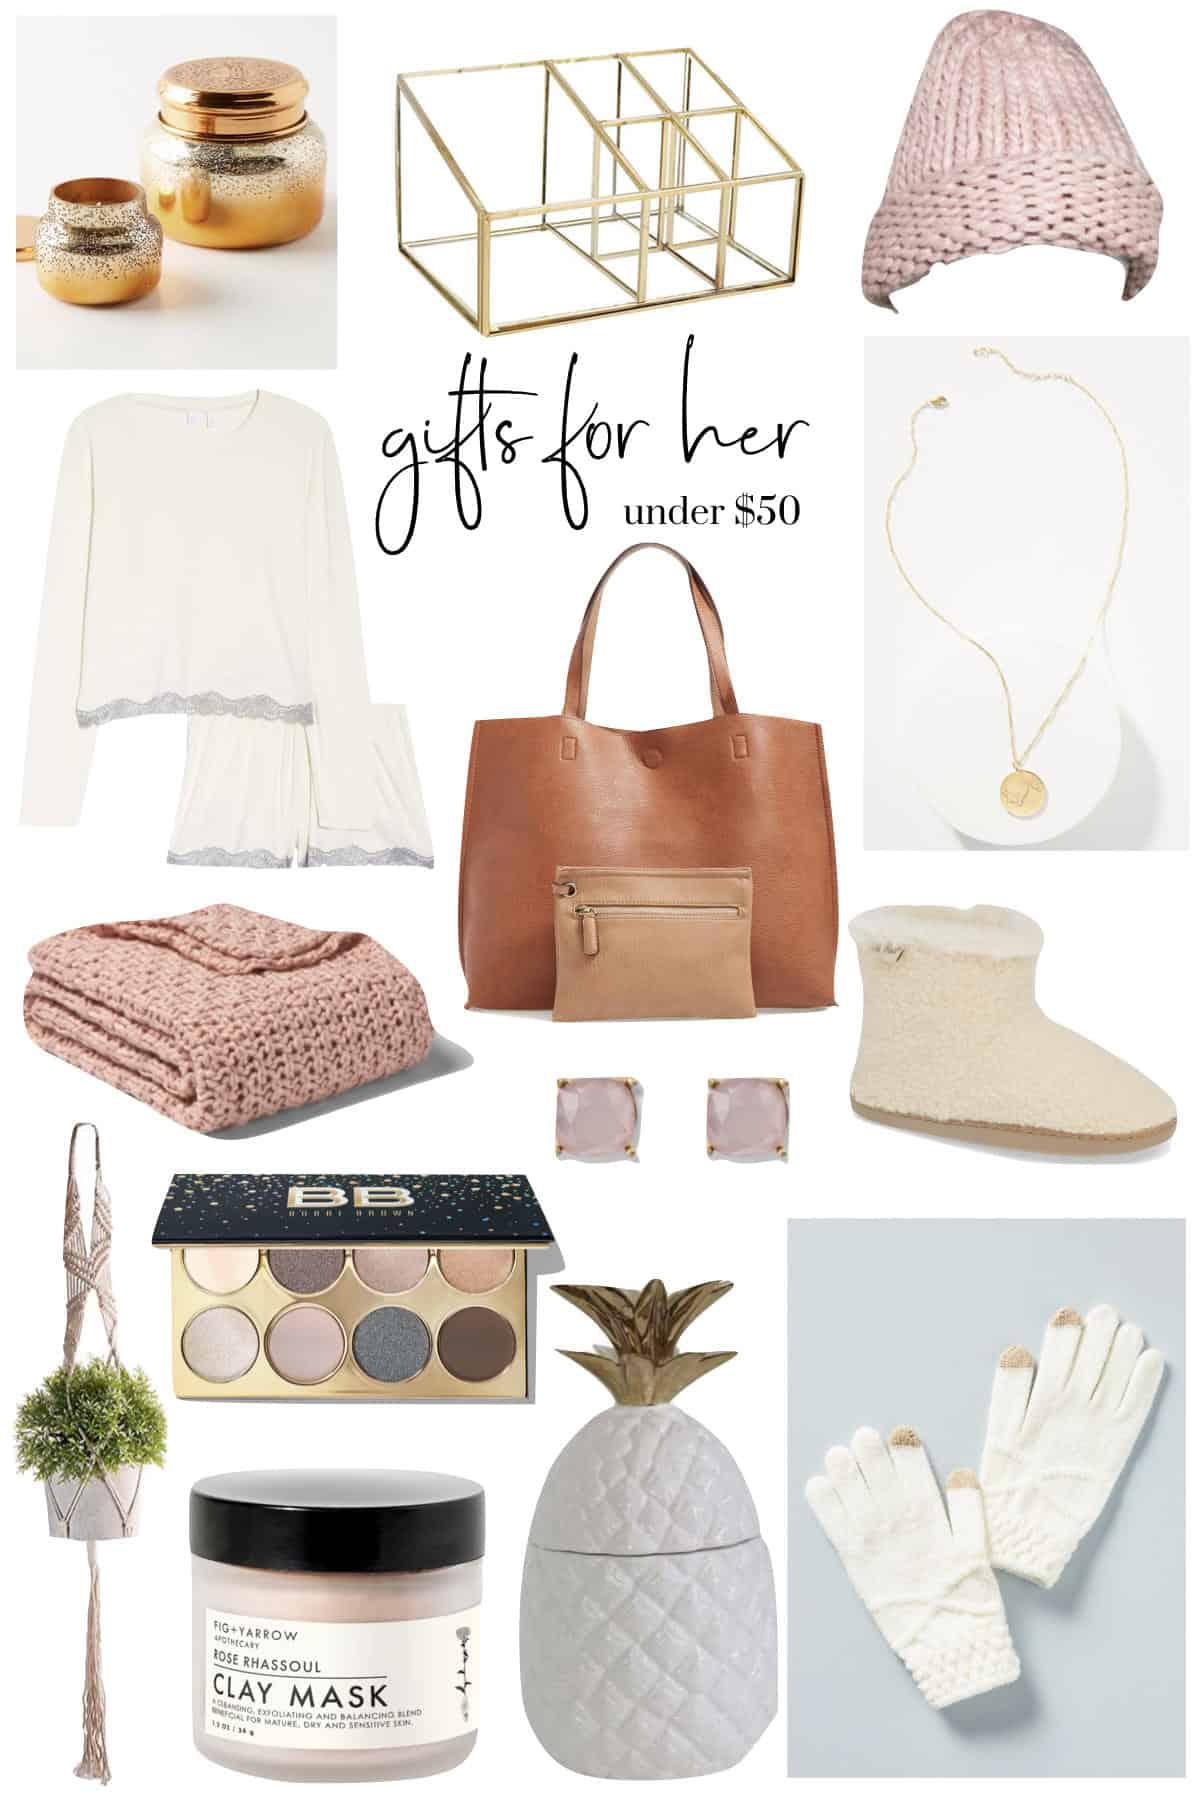 Gifts For Her Under 50 $ | Gift Guide - An Unblurred Lady